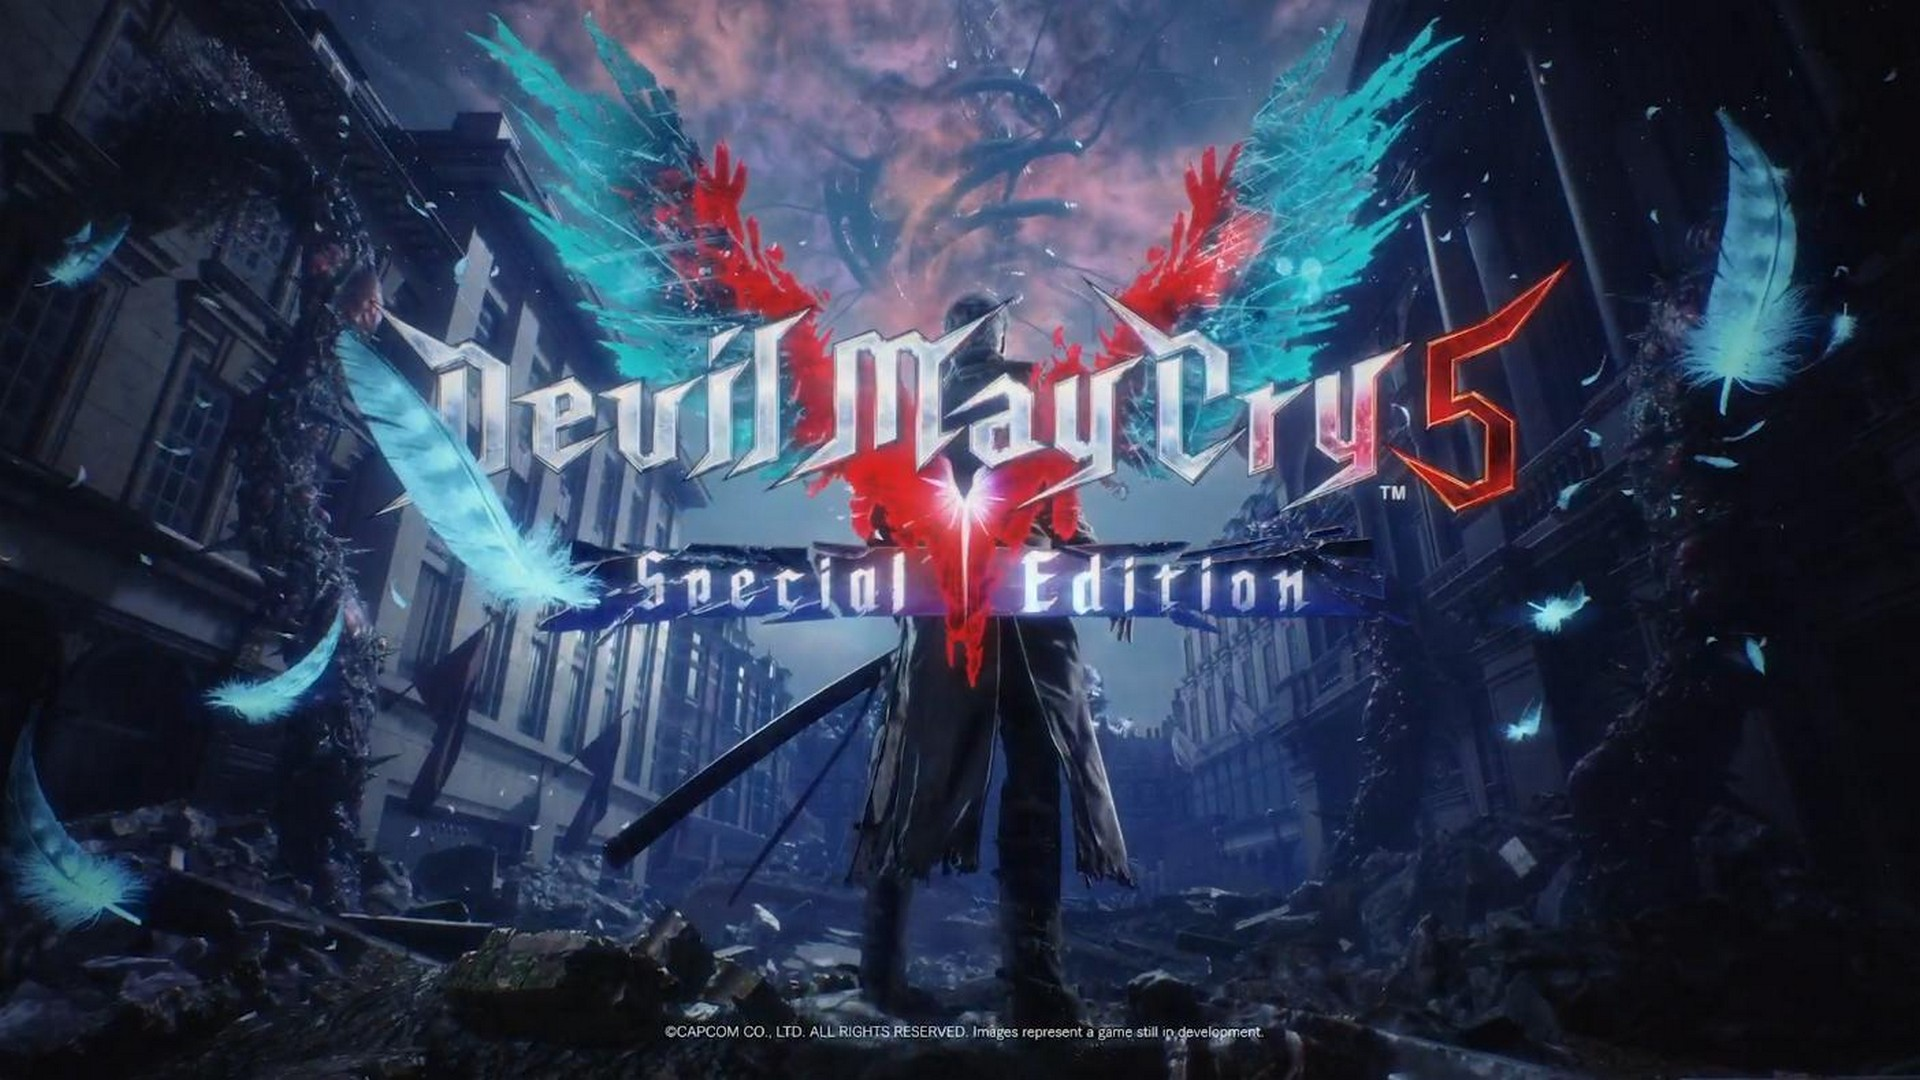 Devil May Cry 5 Special Edition Brings All-New Features & Playable Vergil To Next-Gen Consoles